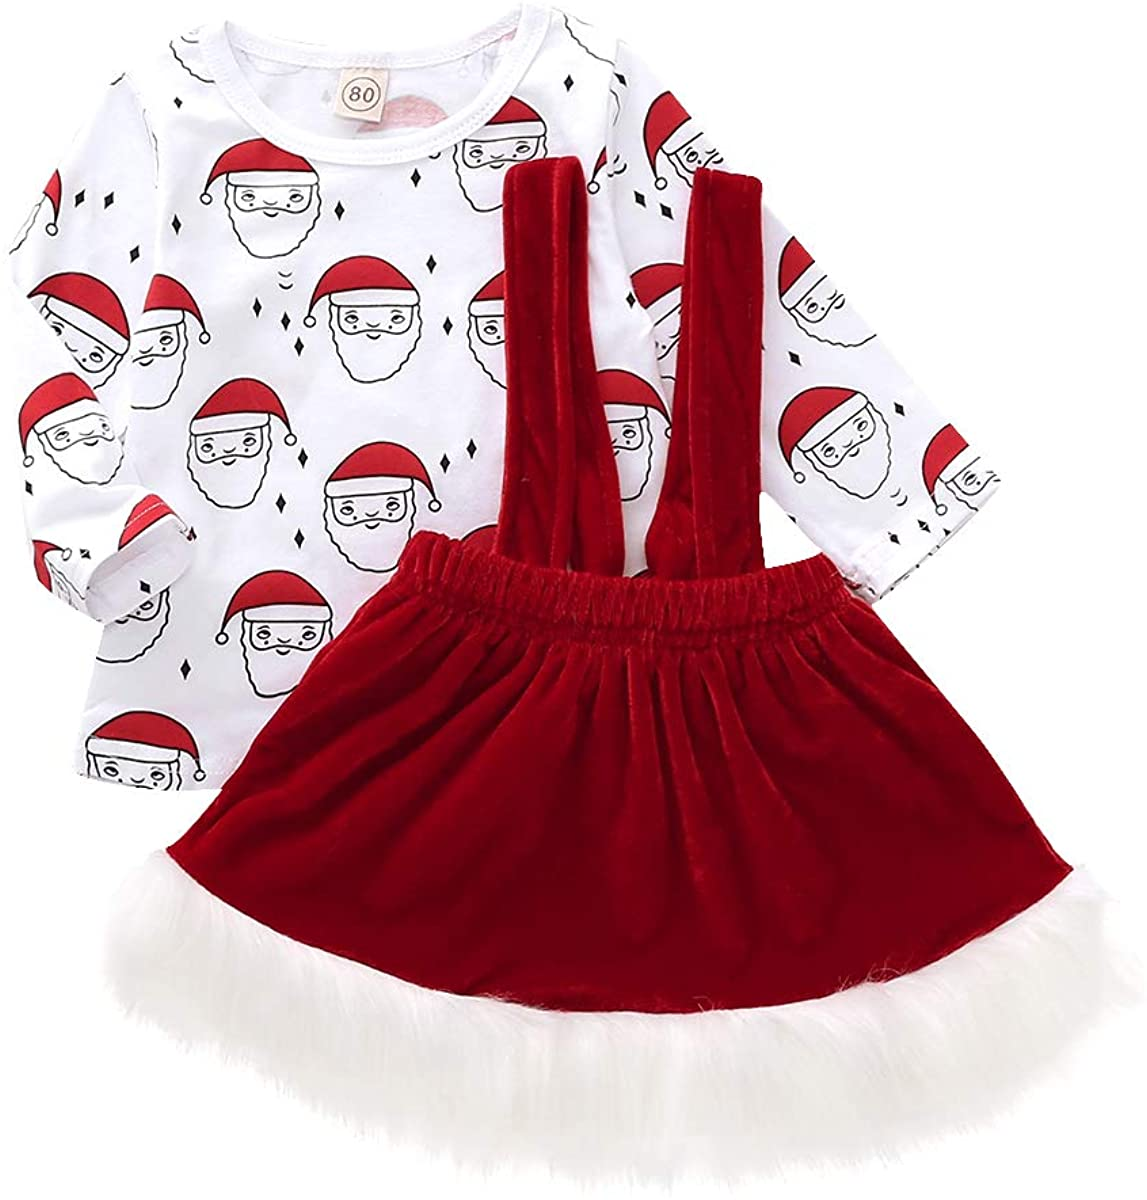 Toddler Baby Kids Girls Outfits Santa Claus T-Shirt Tops Red Tutu Party Suspender Skirt Sets Spring Clothes